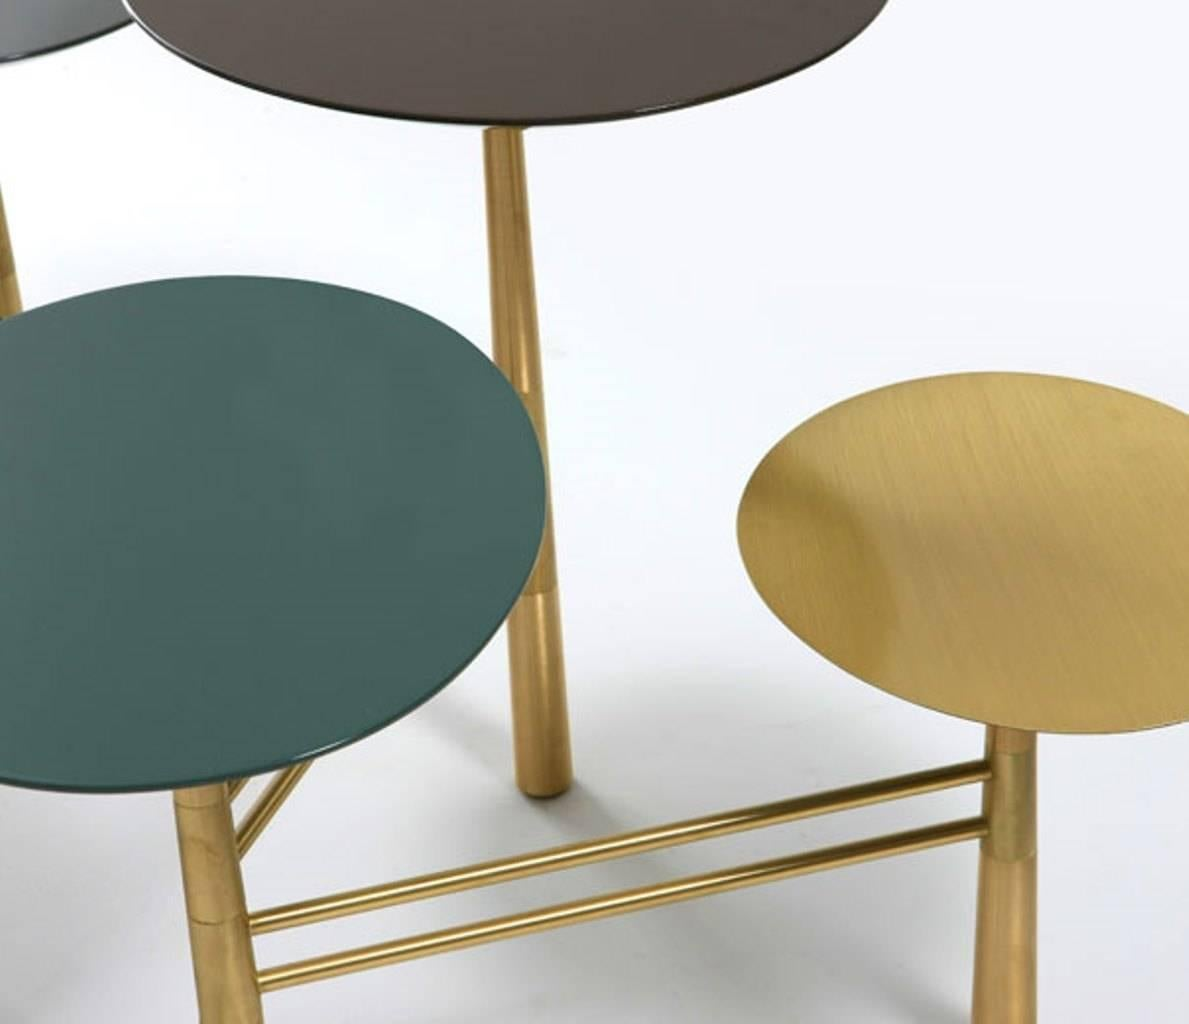 Tapis Du0027Orient Pebble Table By Nada Debs, Contemporary Coffee At 1stdibs Design Inspirations